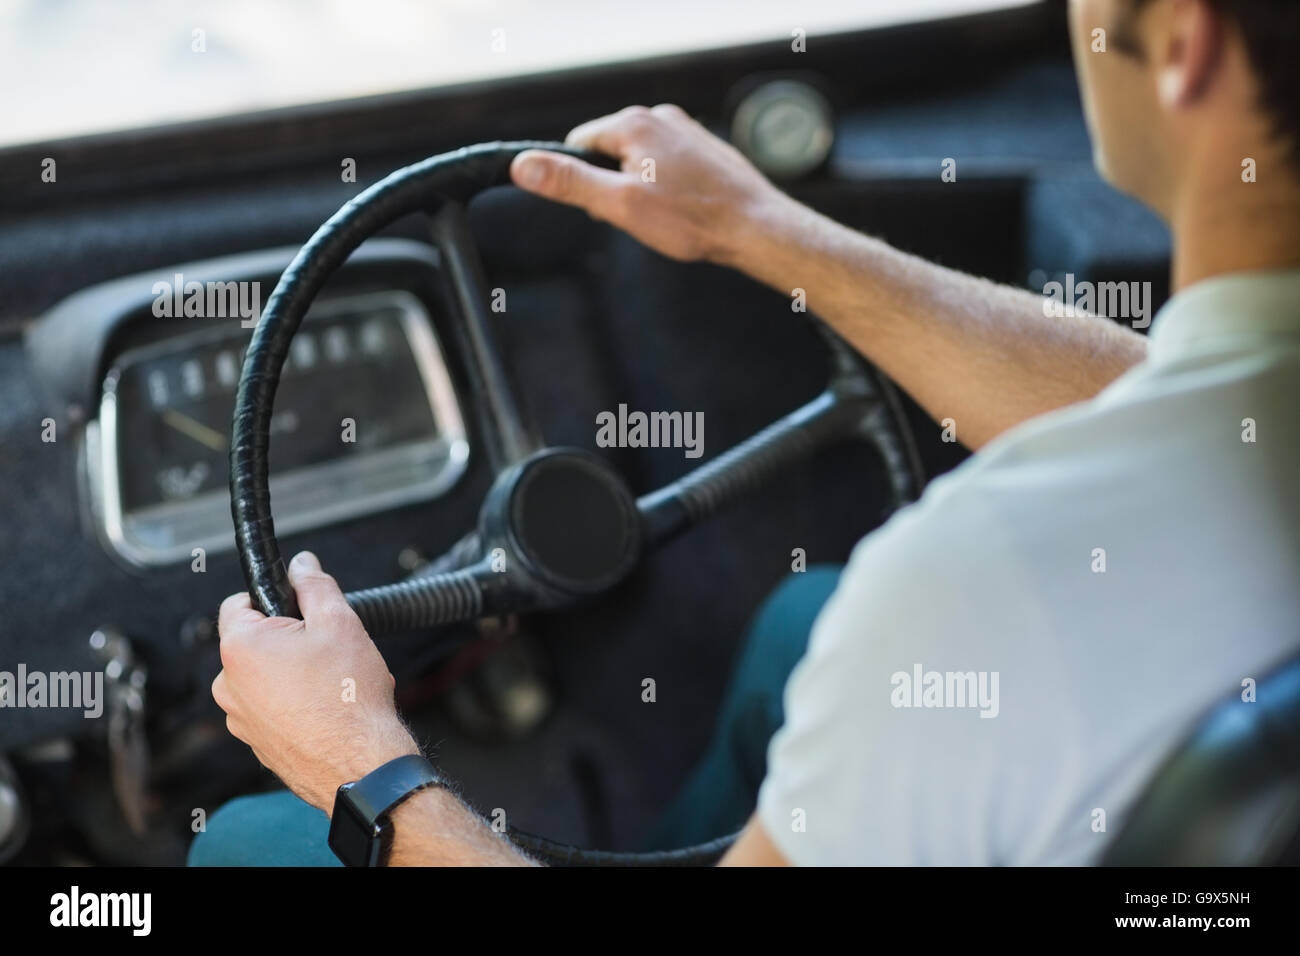 Bus driver driving a bus - Stock Image